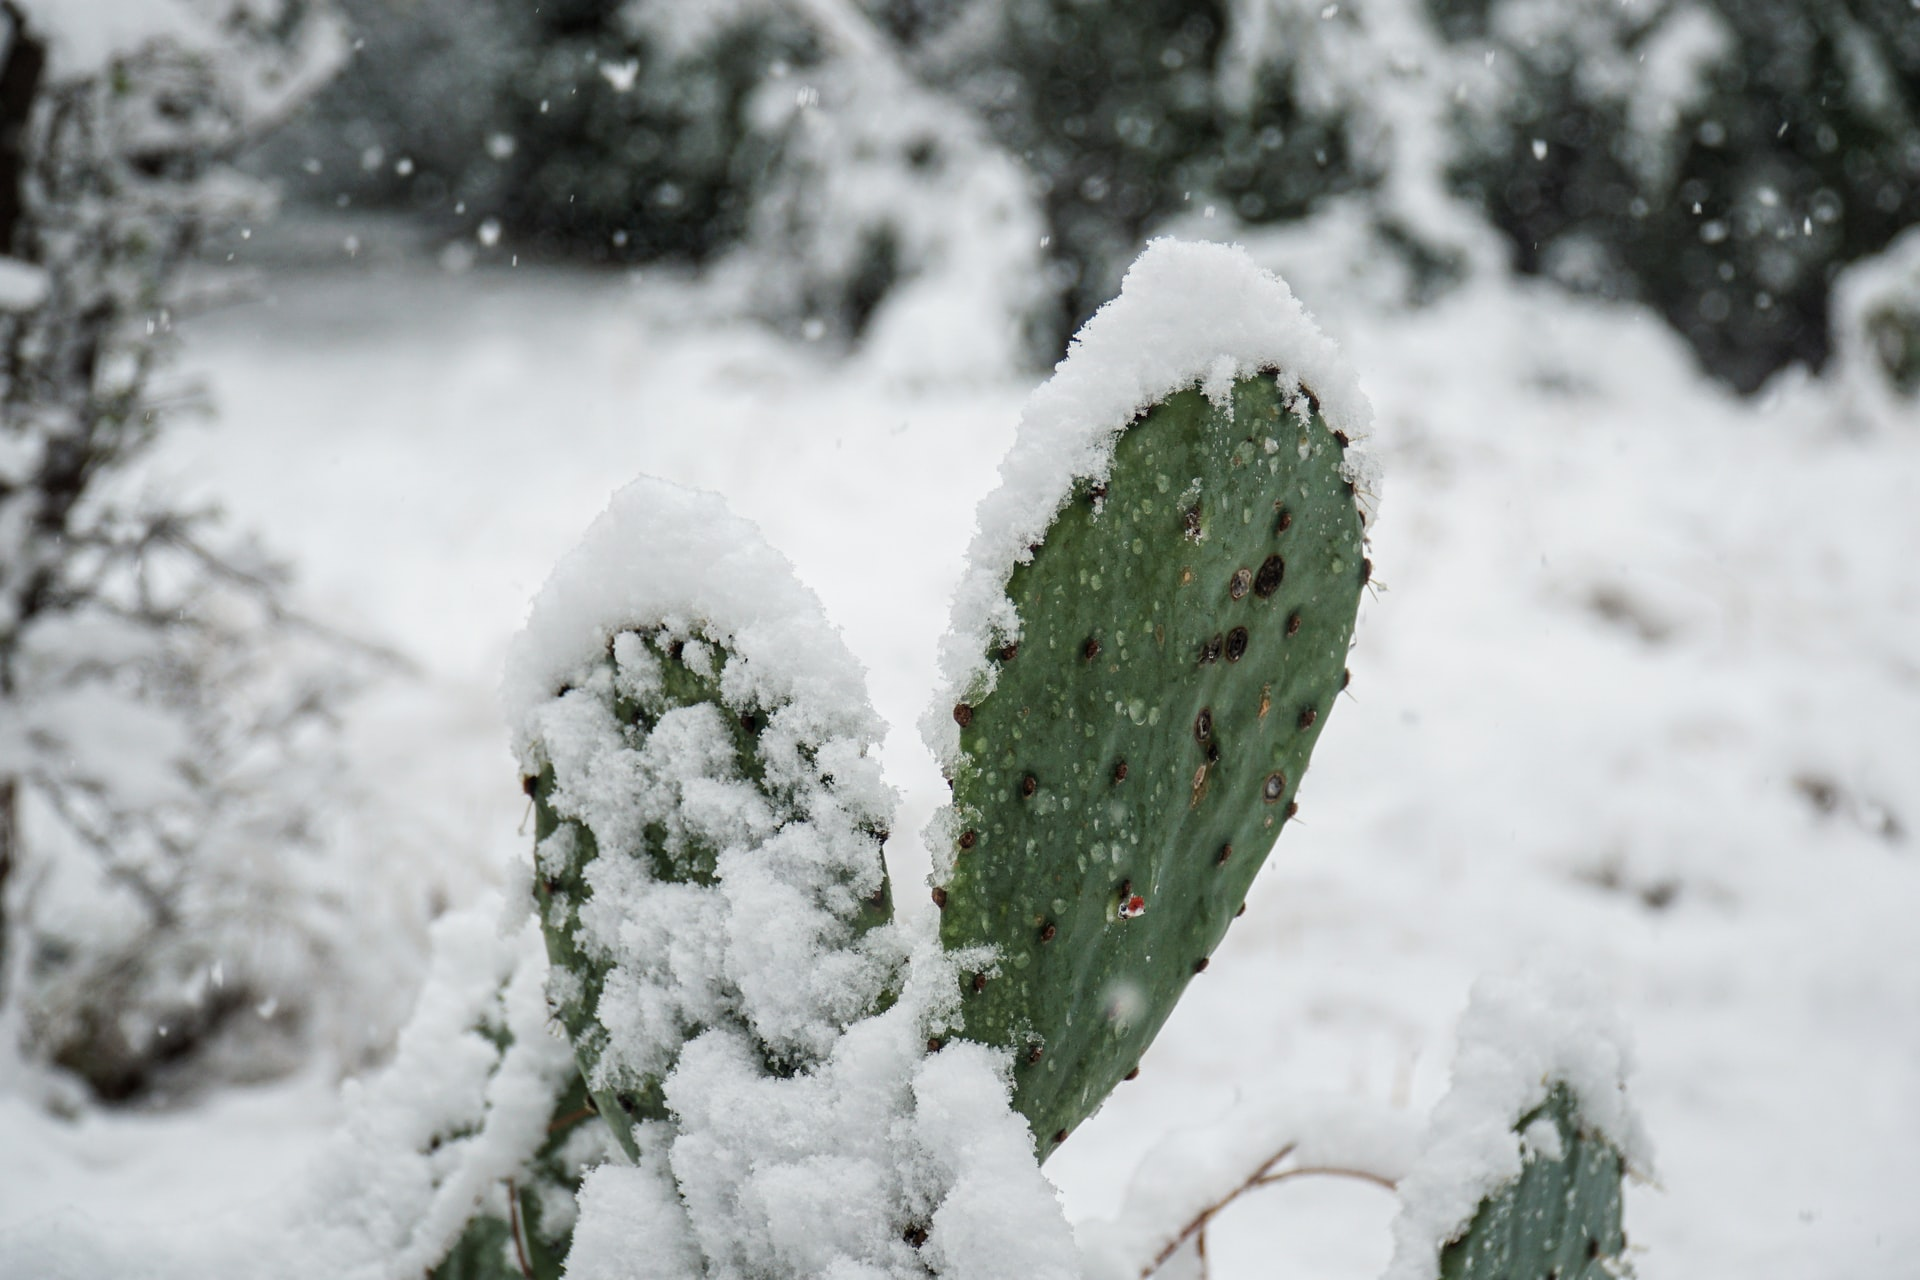 A prickly pear cactus covered in snow during the February Texas winter storm